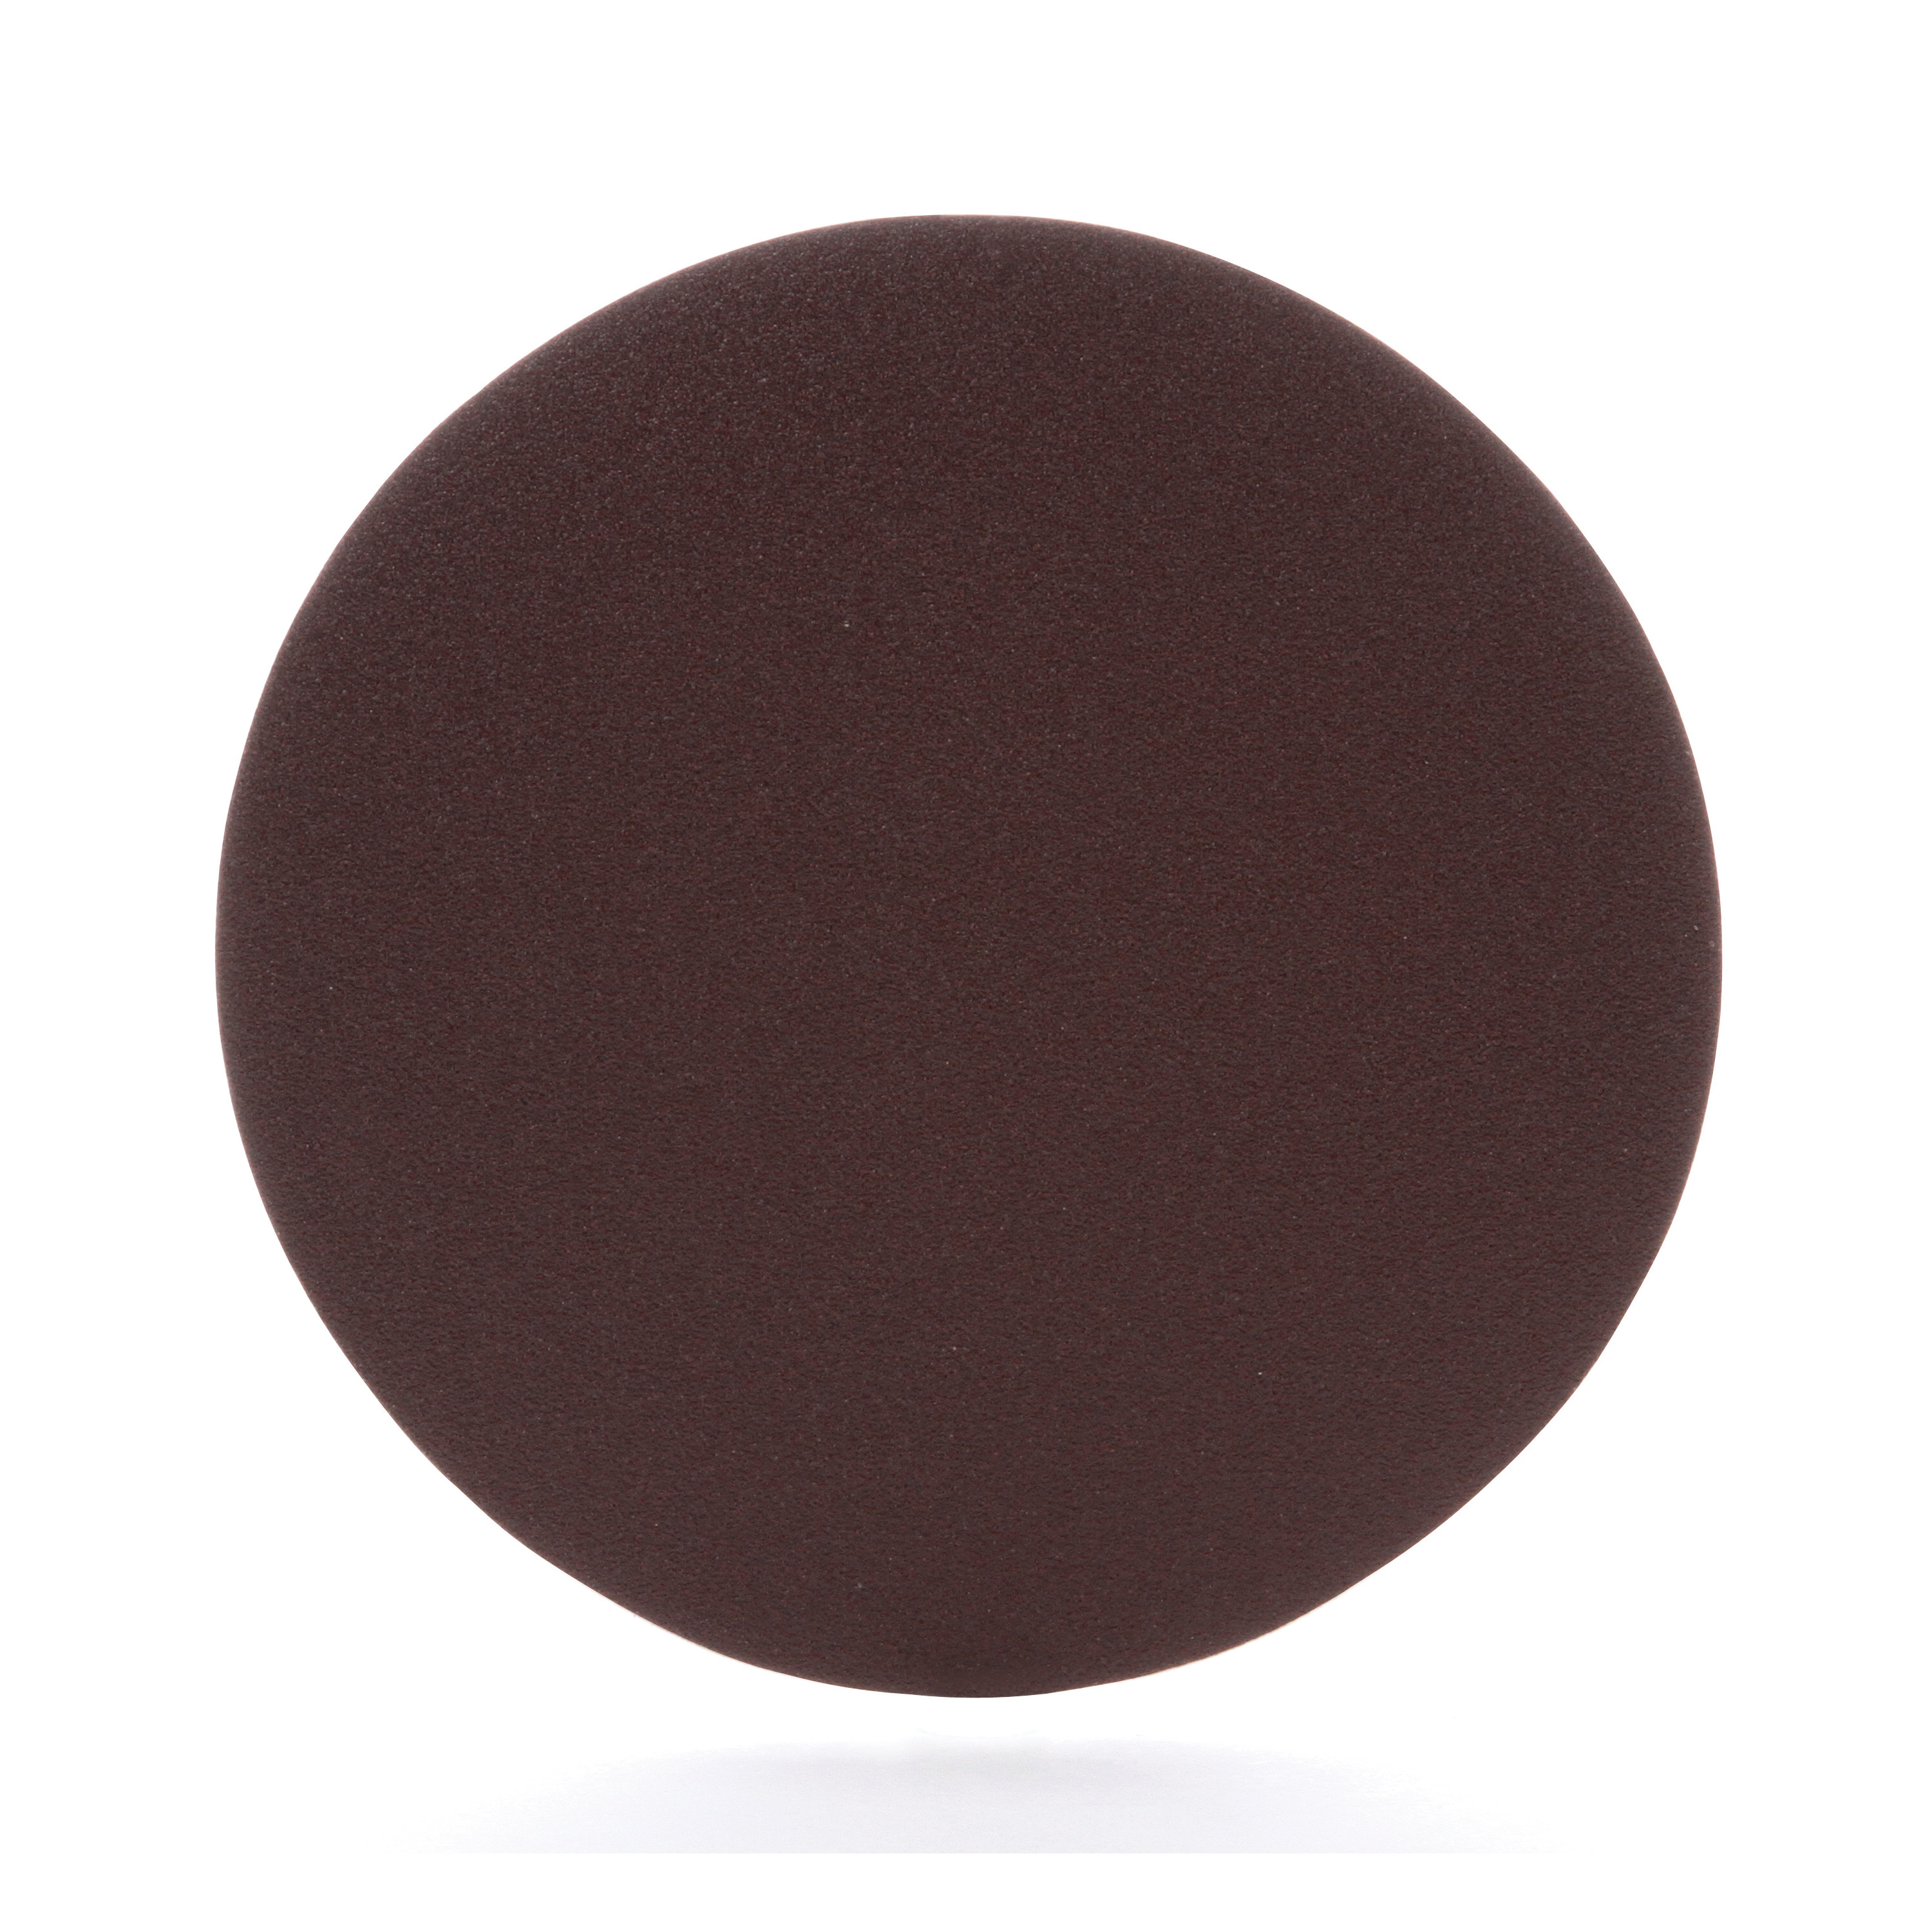 Stikit™ 051111-49918 216U Open Coated PSA Mounted Point, 6 in Dia Disc, P180 Grit, Coarse Grade, Aluminum Oxide Abrasive, Paper Backing